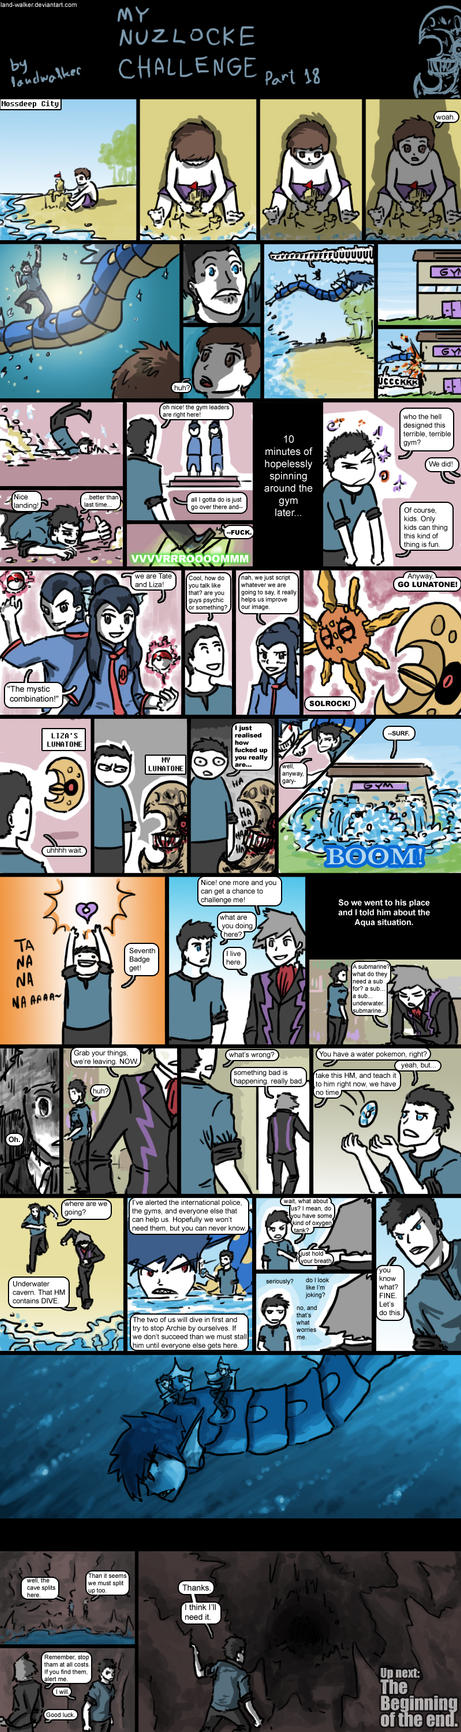 Landwalker's nuzlocke-part 18 by land-walker